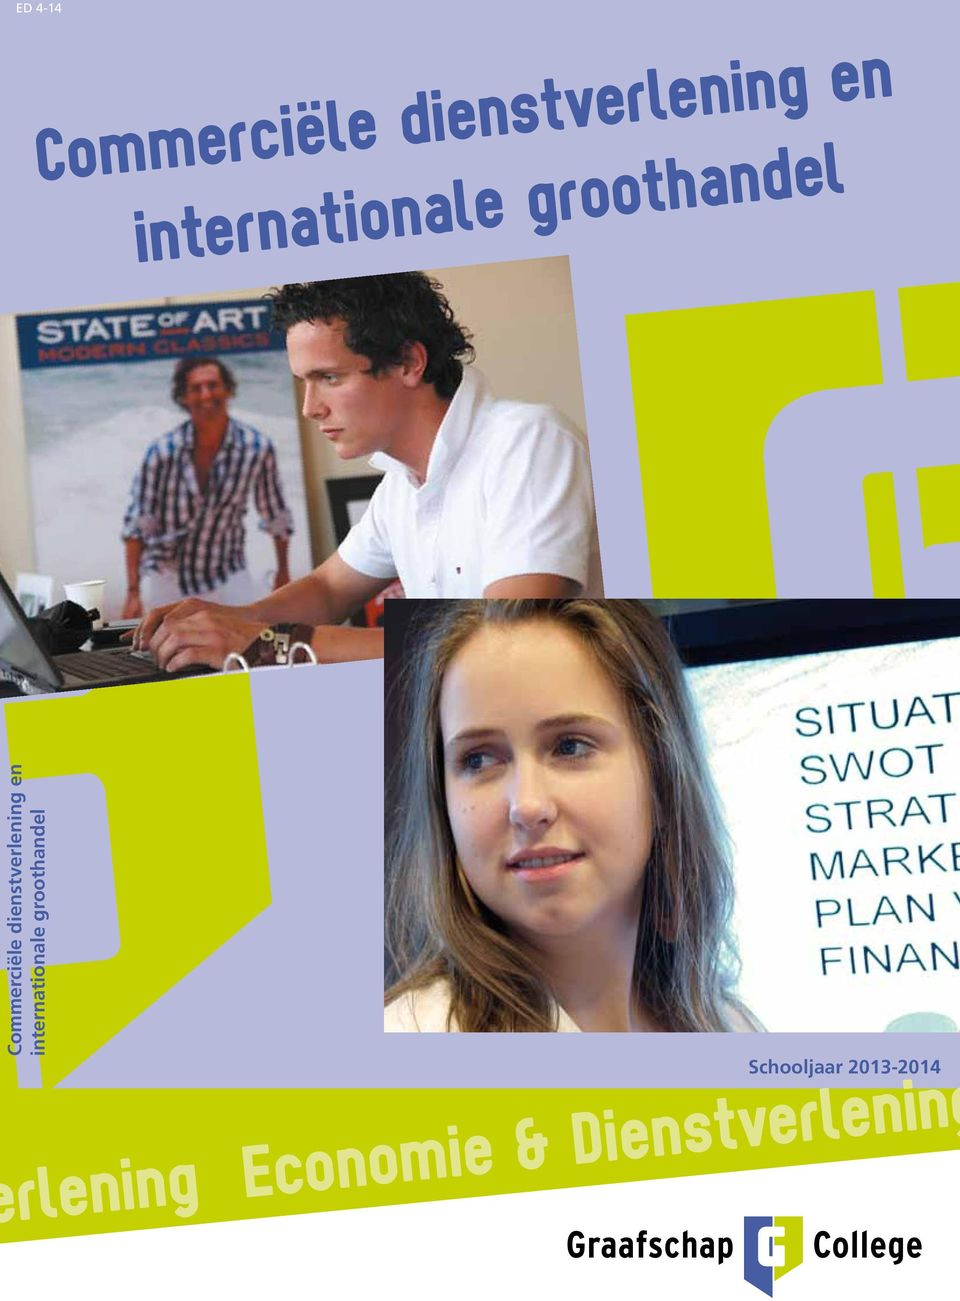 dienstverlening en internationale